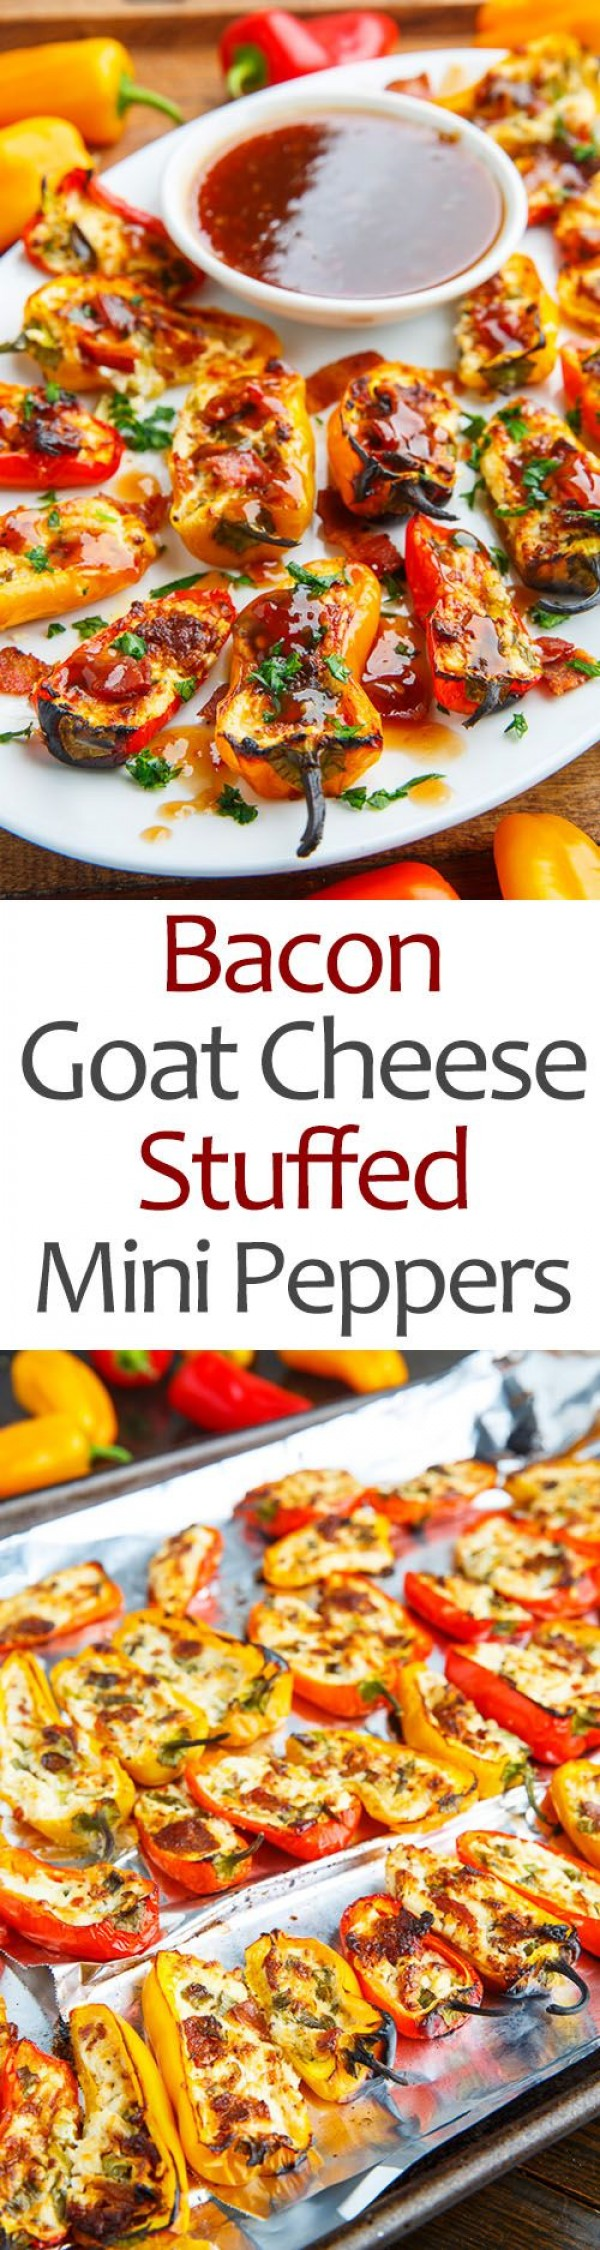 Get the recipe Bacon Goat Cheese Stuffed Mini Peppers @recipes_to_go